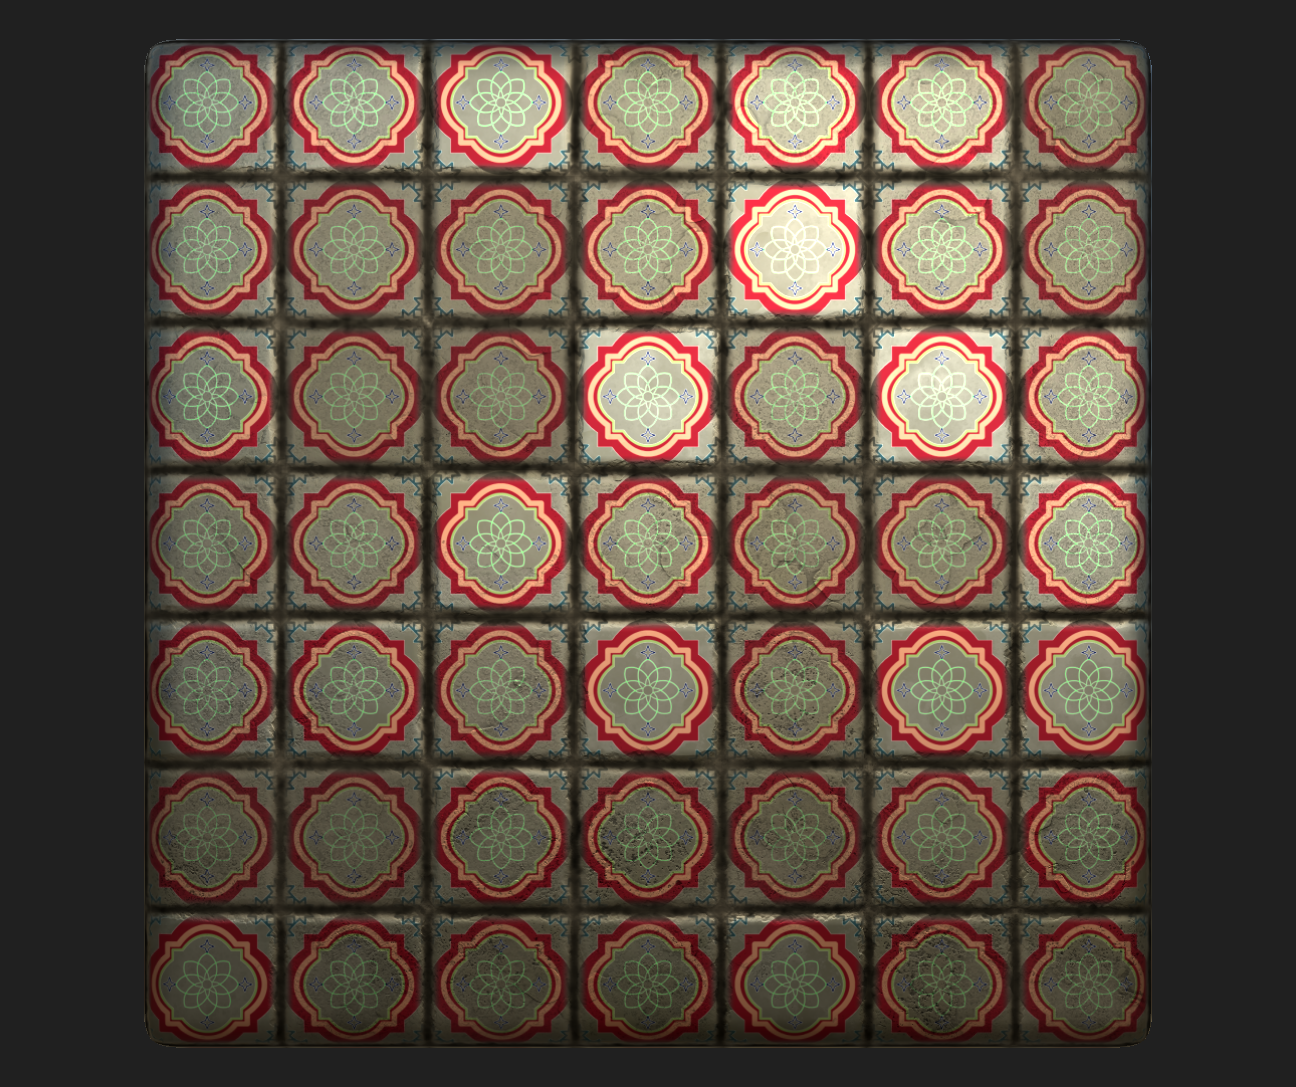 Tile_22_Pattern_04.png